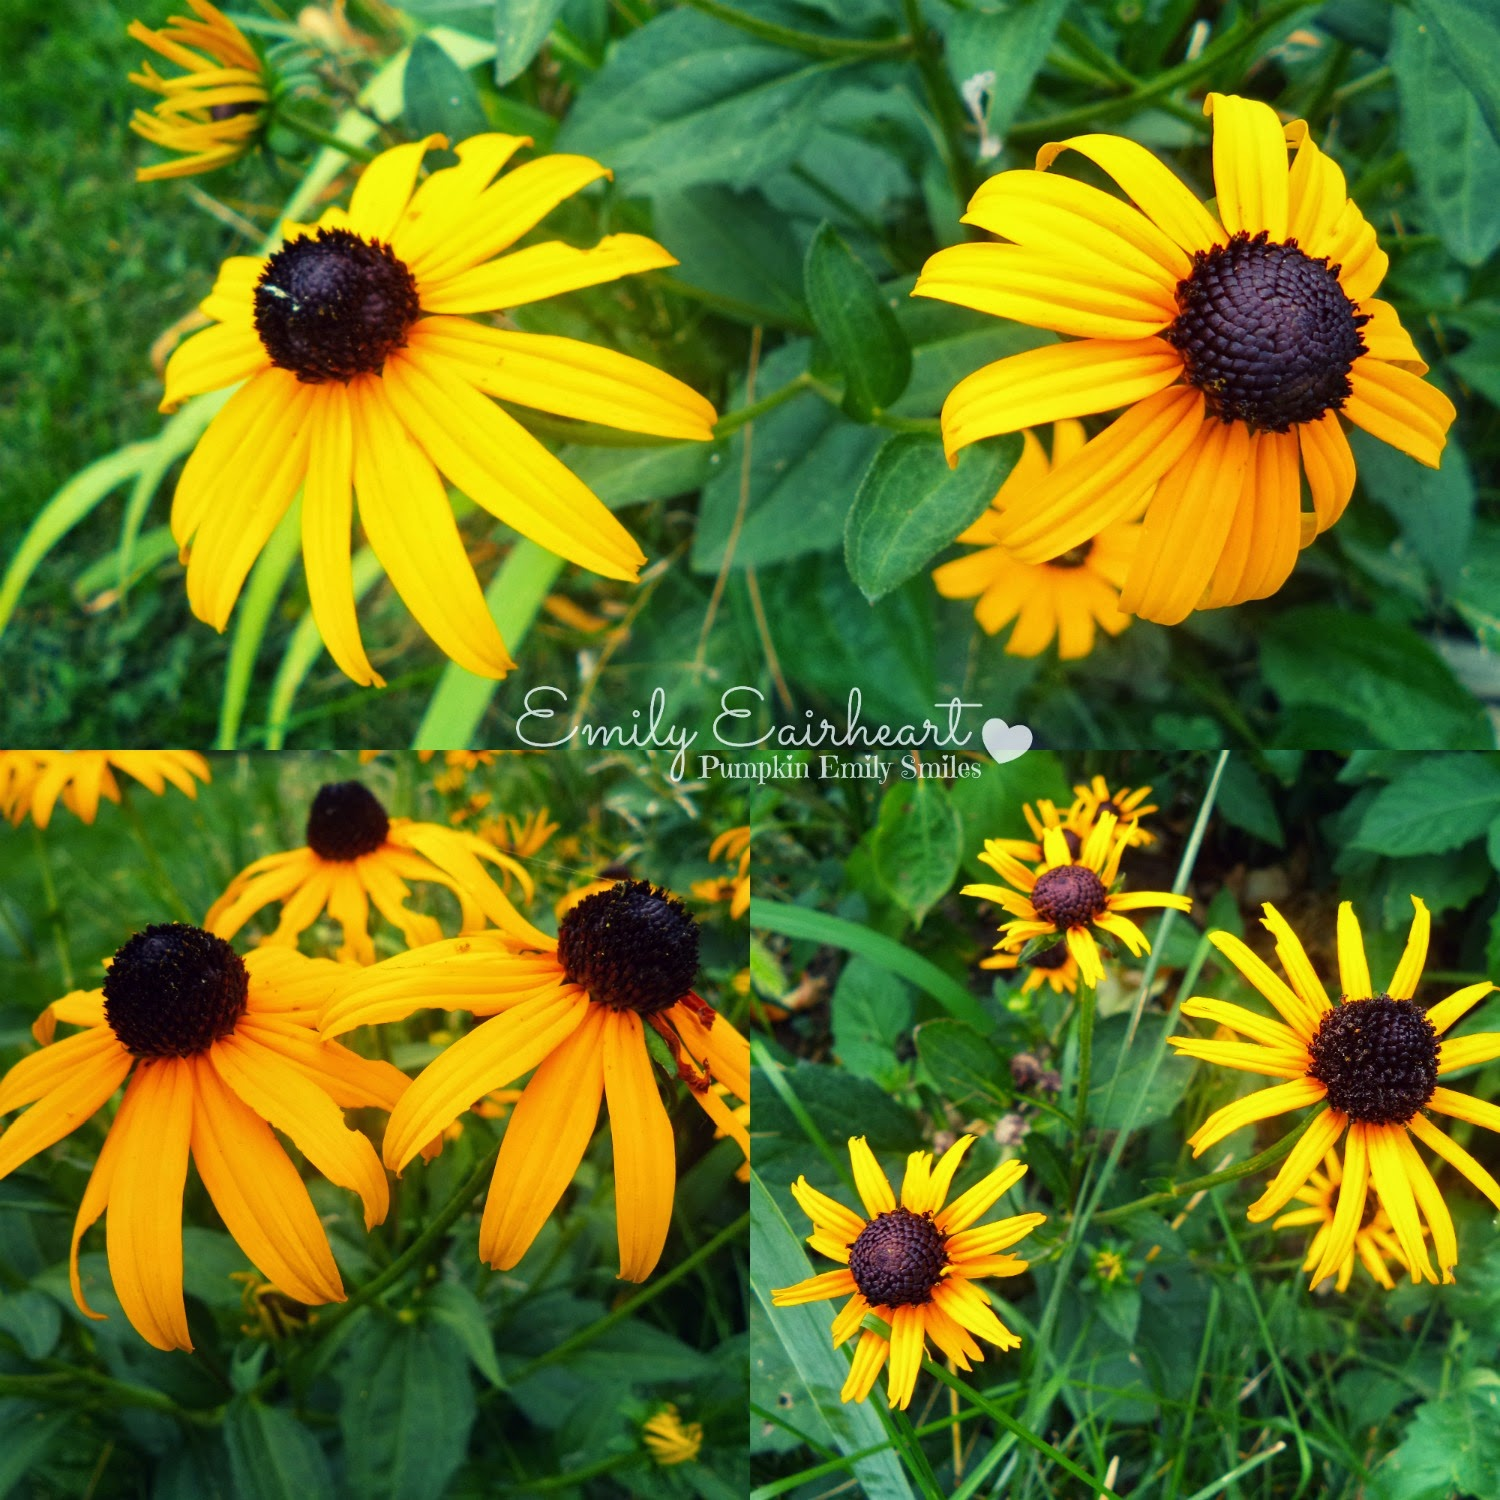 Three images of yellow Coneflowers or Black Eyed Susans